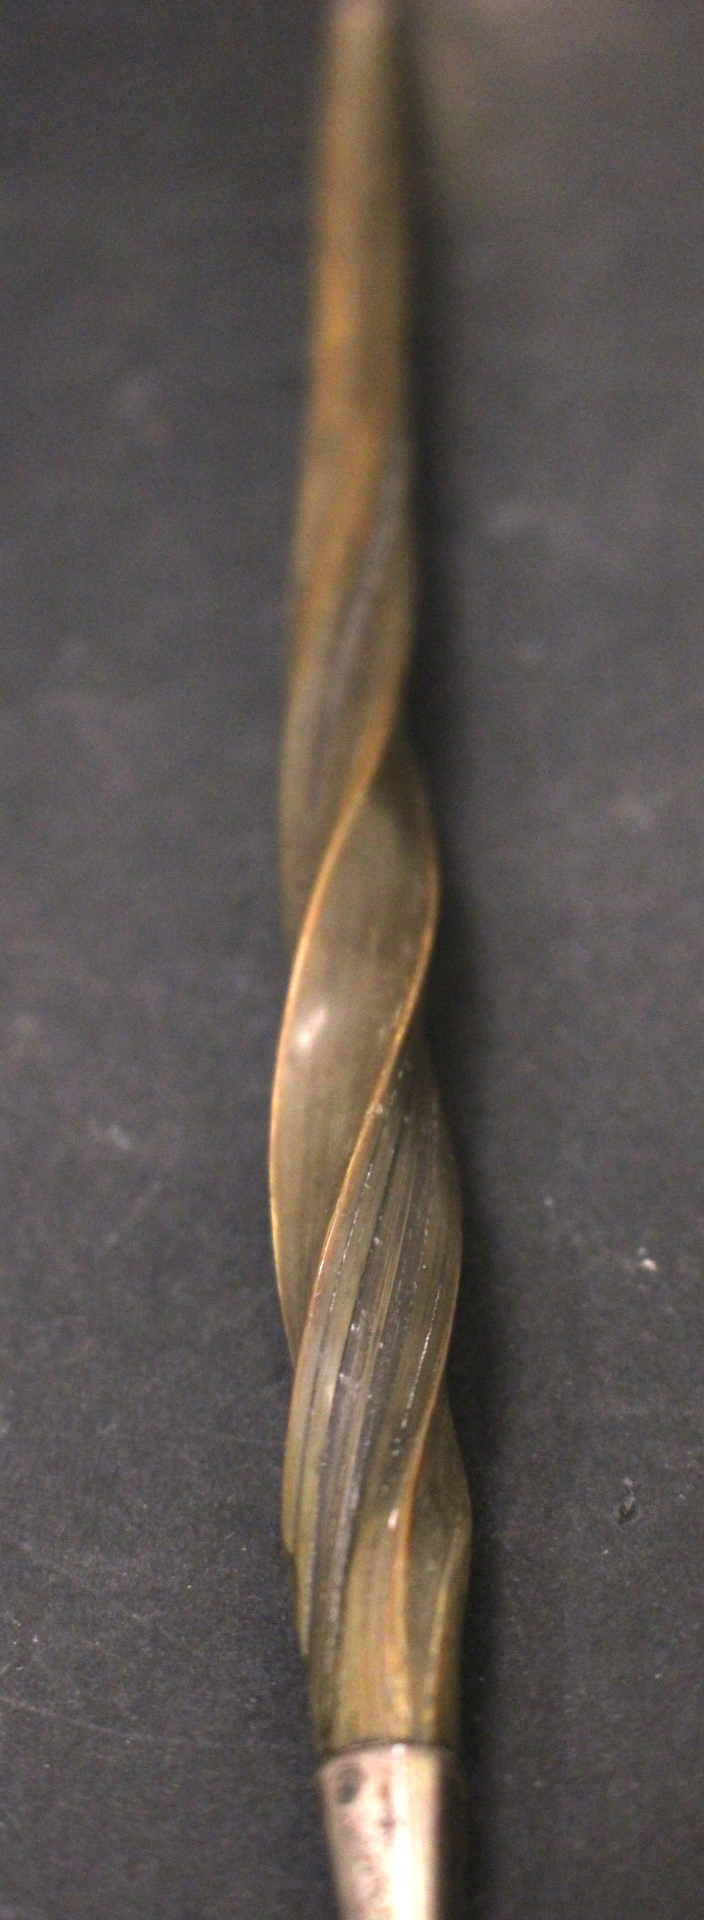 Lot 14 - AN EARLY 19TH CENTURY ENGLISH SILVER LADLE, with twisted 'Baleen'/bone handle, tipped with silver,